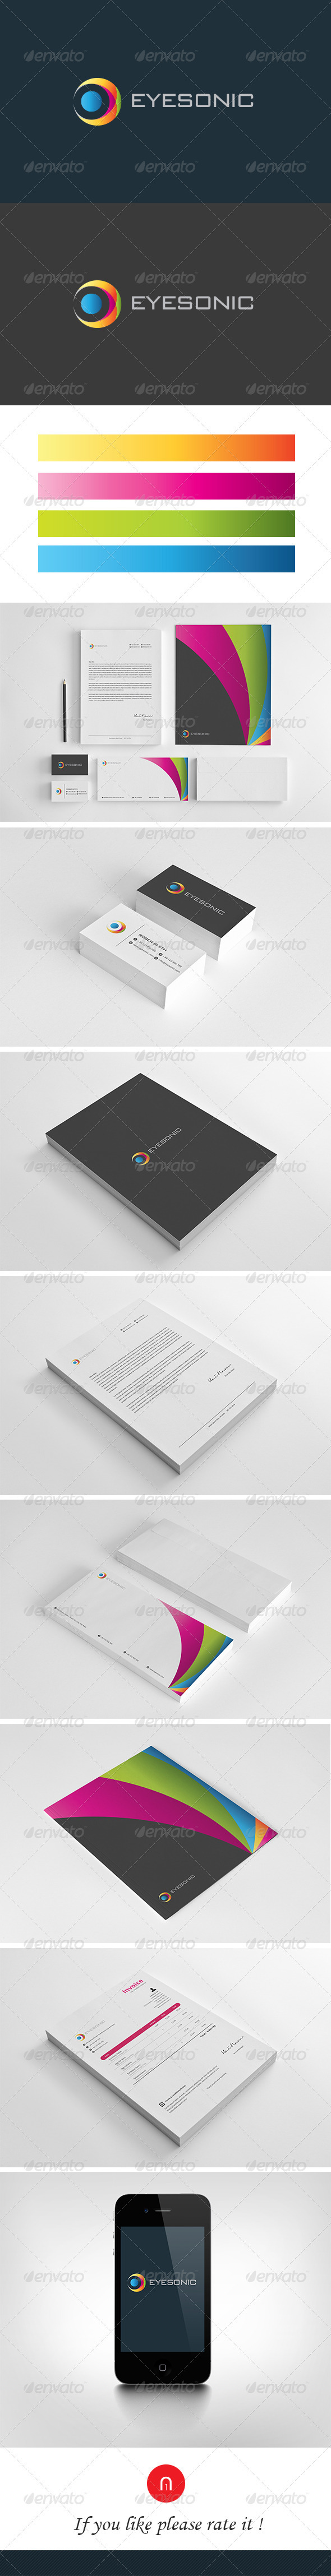 Stationary & Brand Identity - Eyesonic - Stationery Print Templates